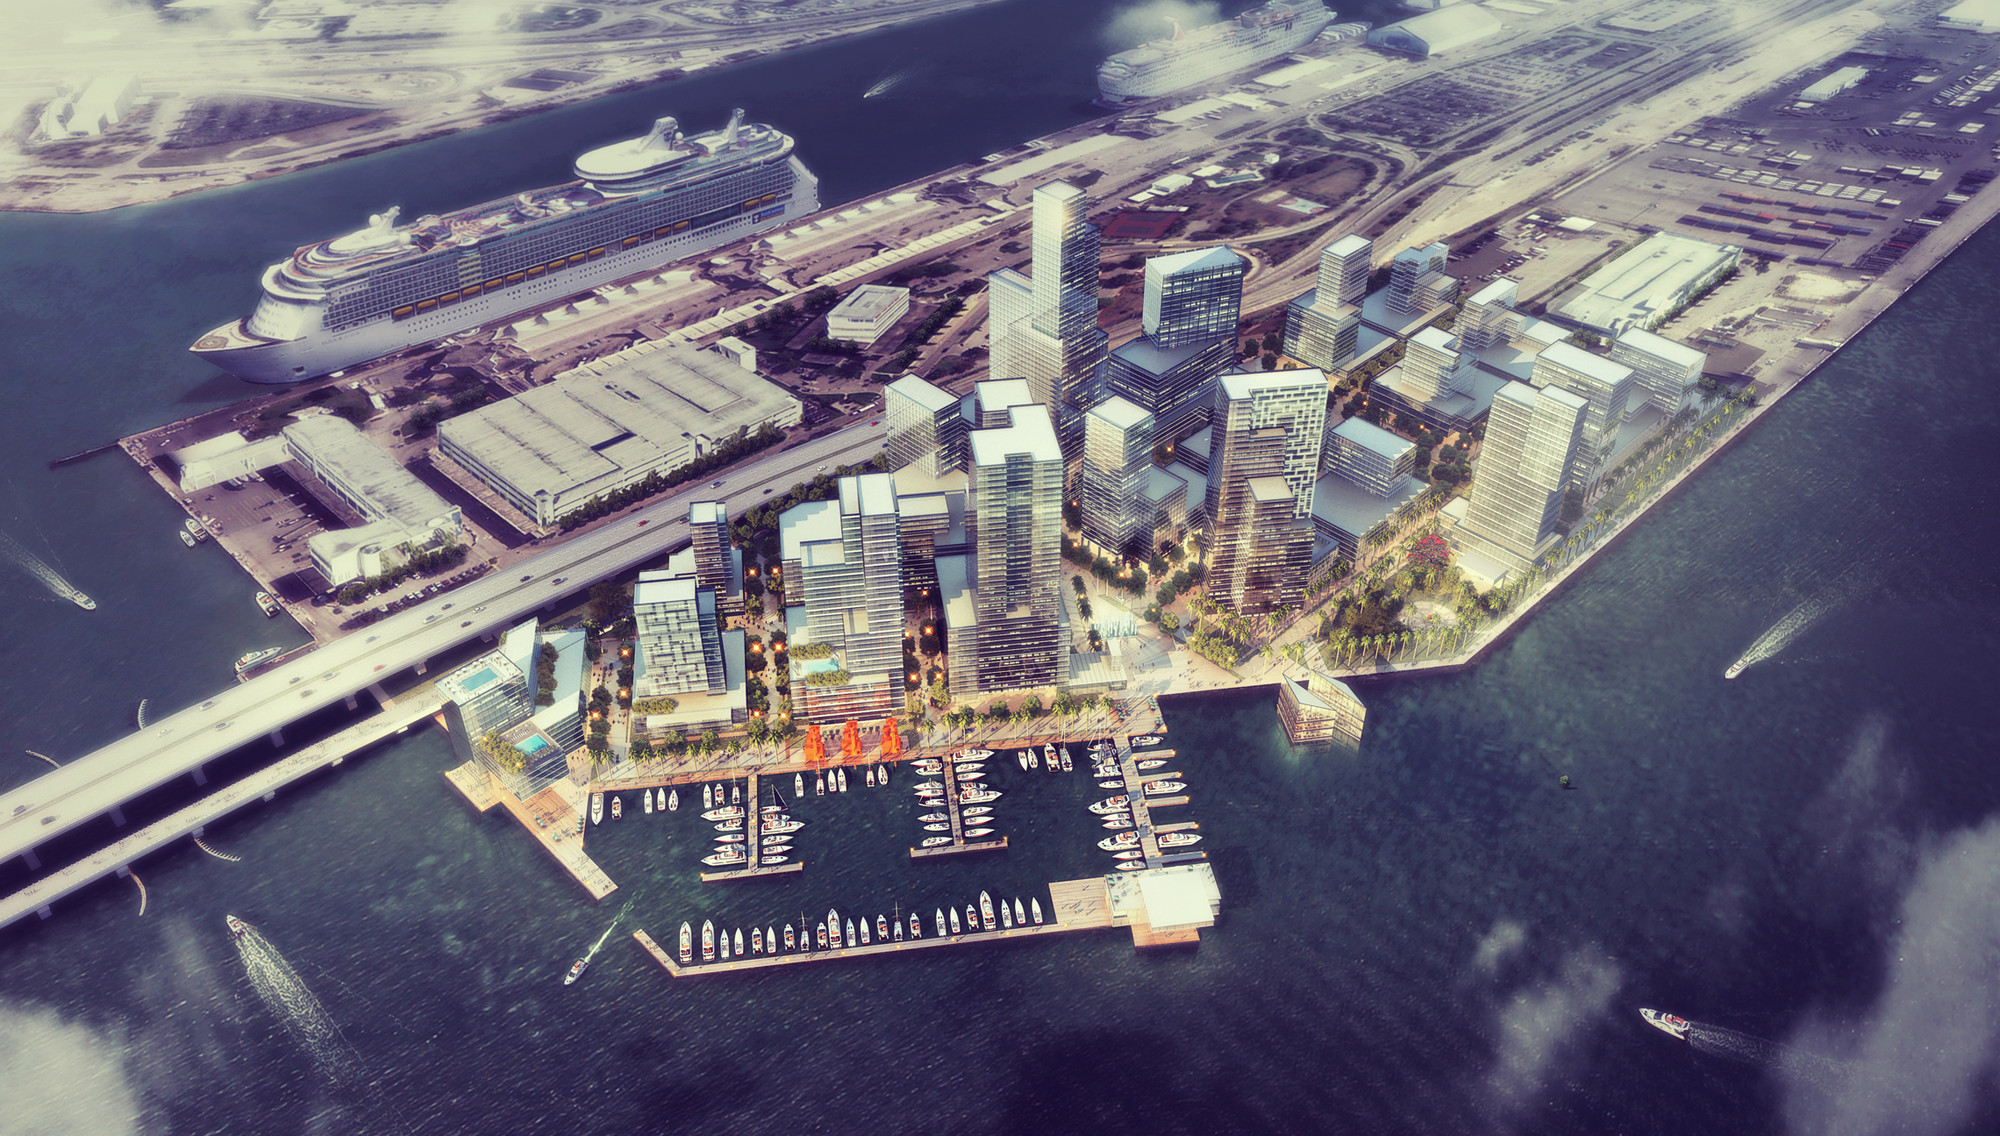 Port-Side Miami / PlusUrbia Design, Courtesy of PlusUrbia